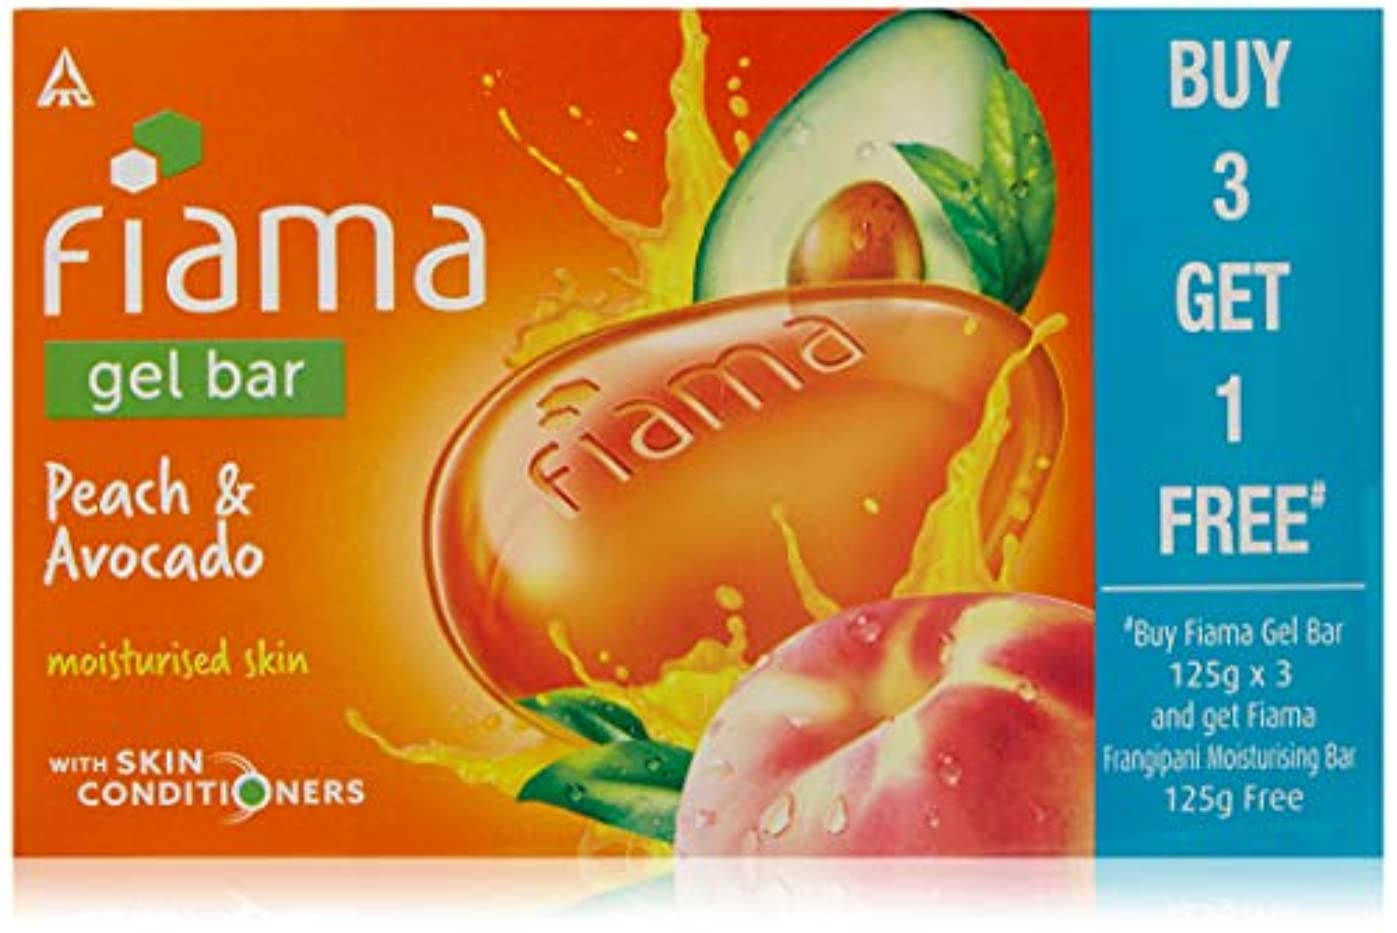 Fiama BUY Gel Bathing Bar, Peach and Avocado, 125g*3+GET 1 Fiama frangipani moisturising bar 125g free (Buy 3...